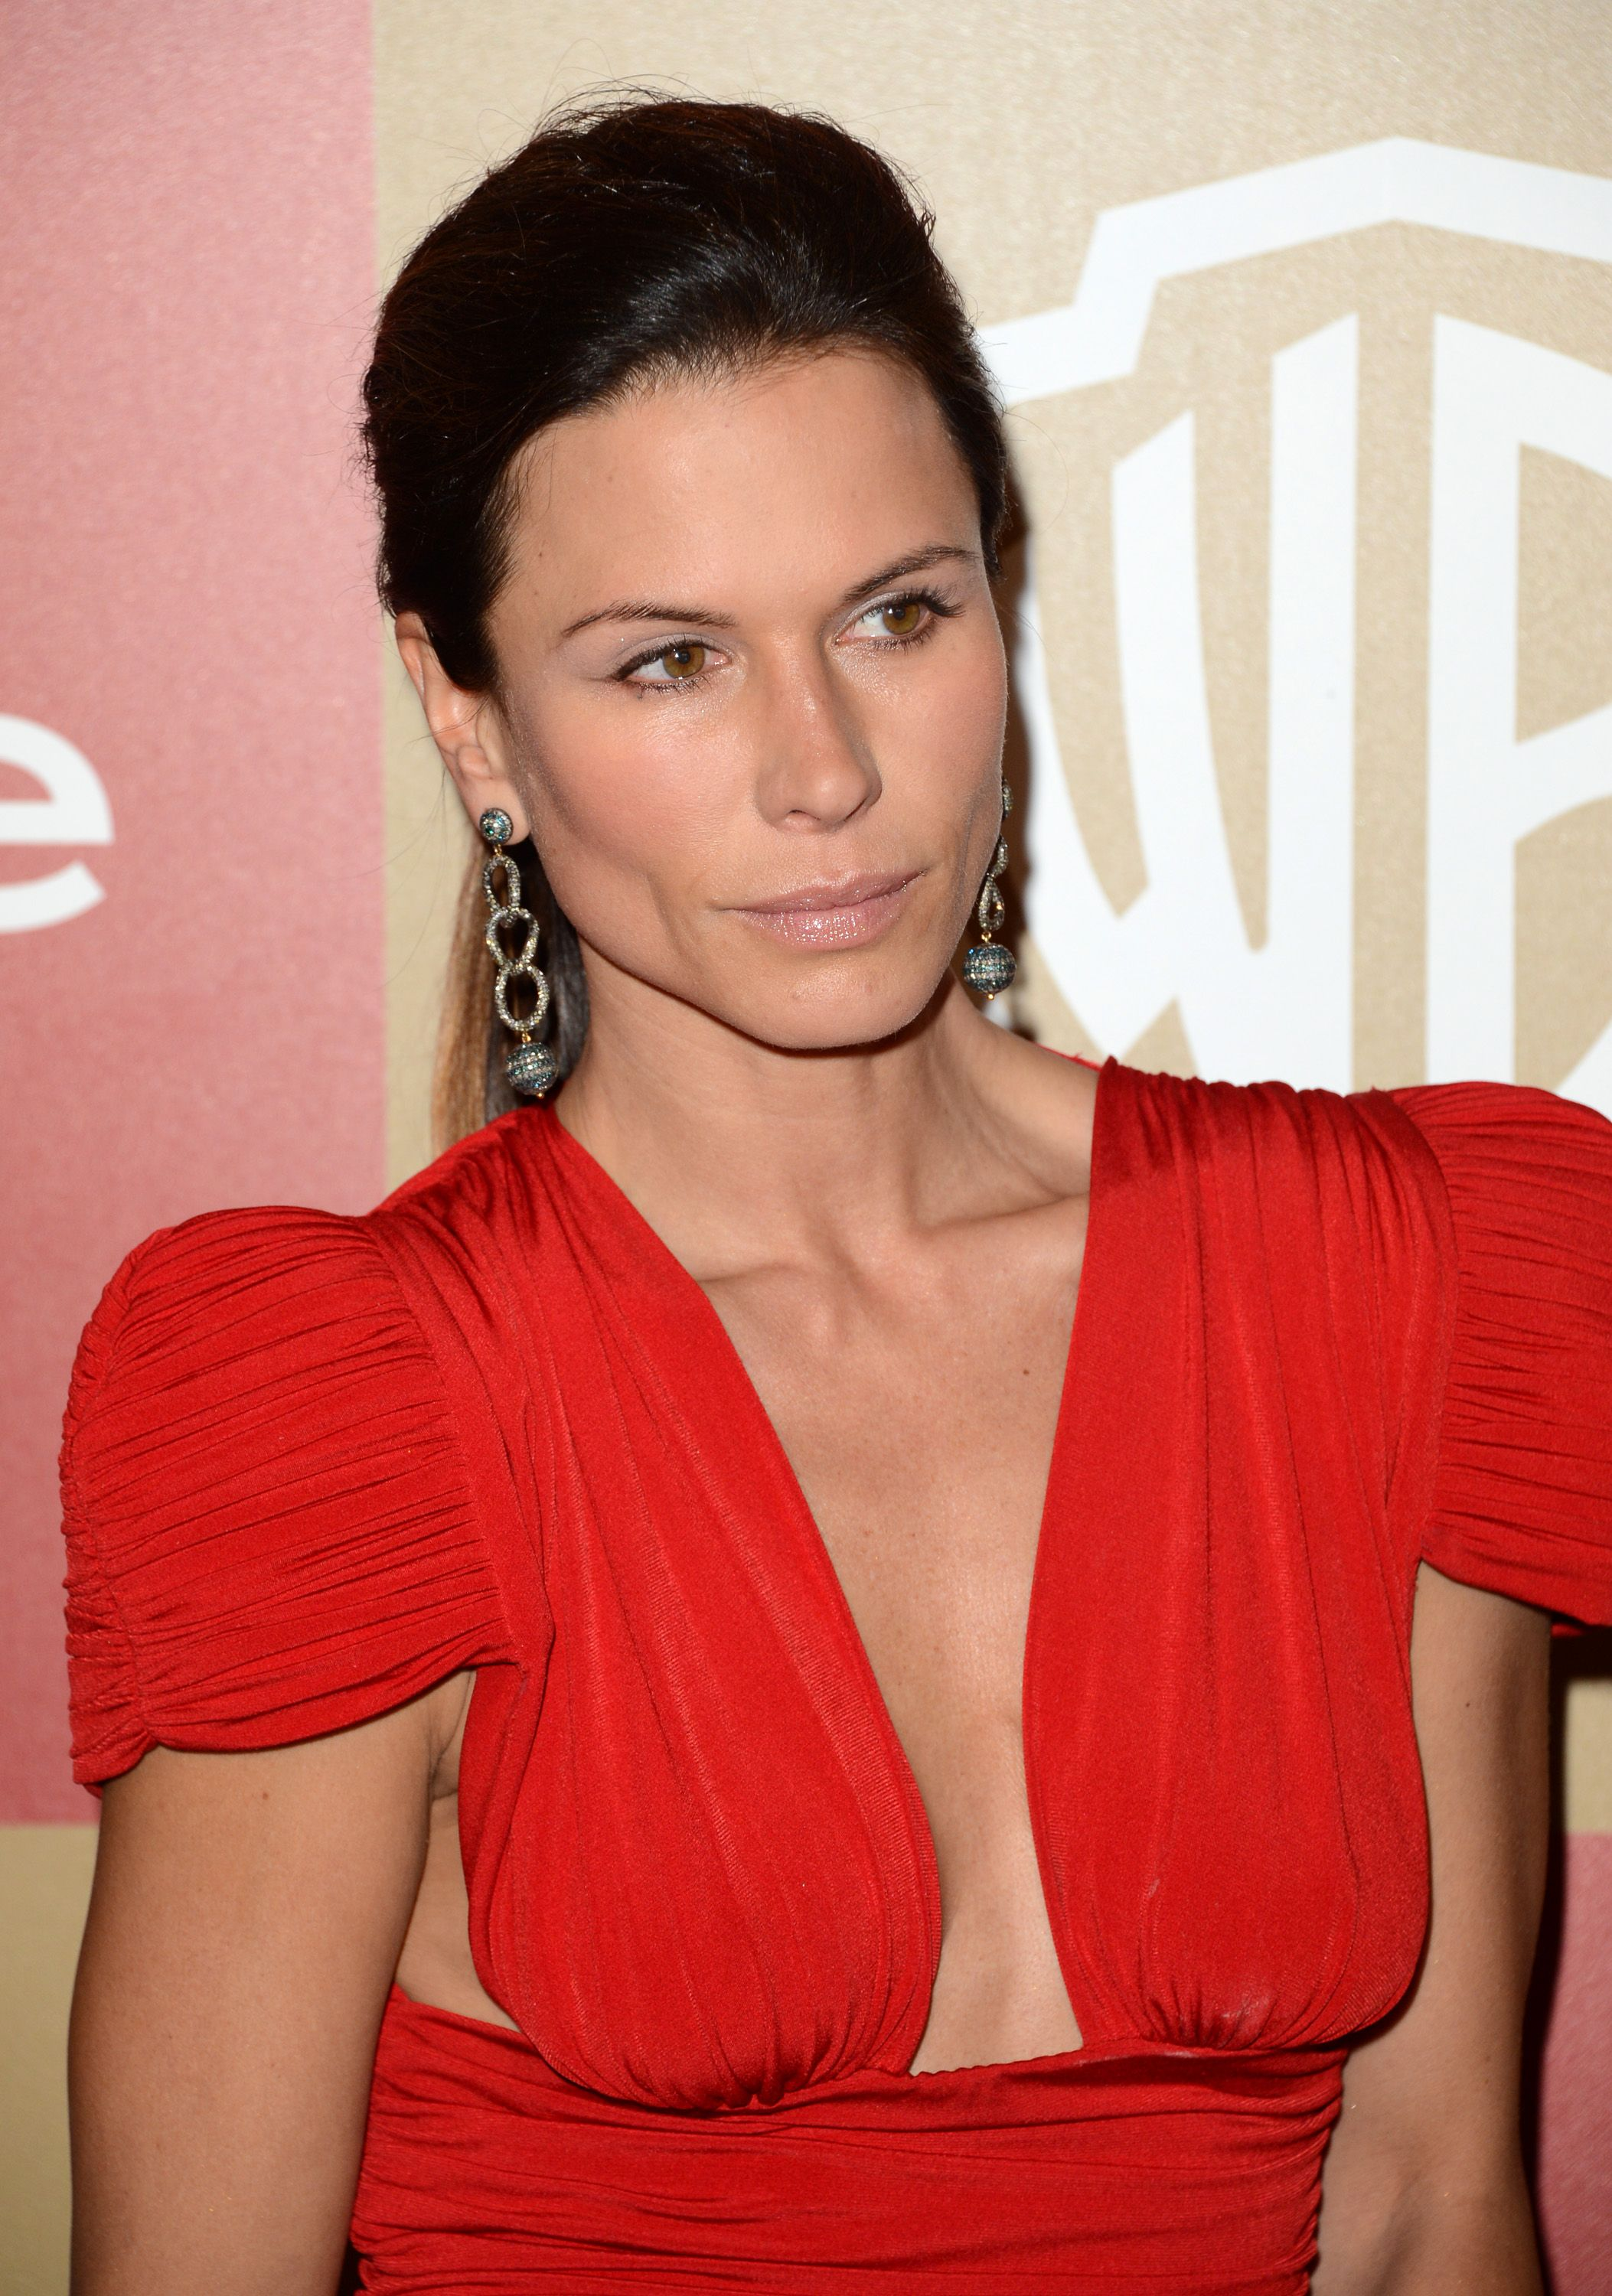 D6LXBON545_Rhona_Mitra_-_14th_Annual_Warner_Bros.__InStyle_Golden_Globe_Awards_After_Party_at_the_Oasis_Courtyard_2C_Beverly_Hills_13.01.13_02